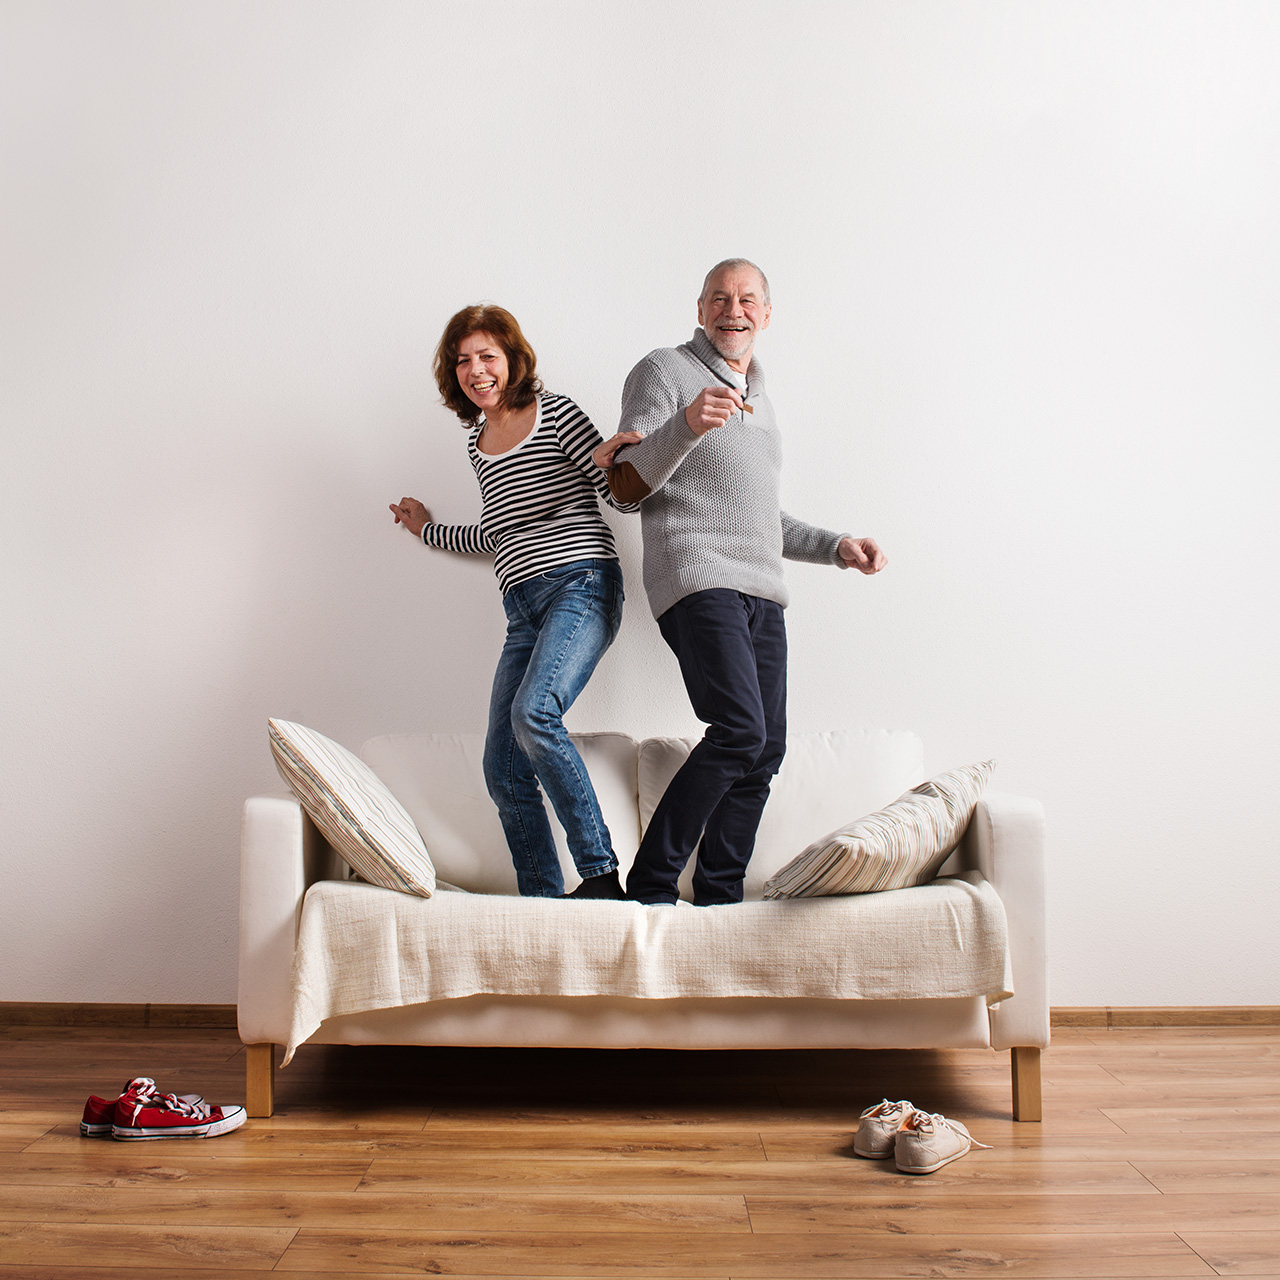 A pain-free couple dances on their couch.